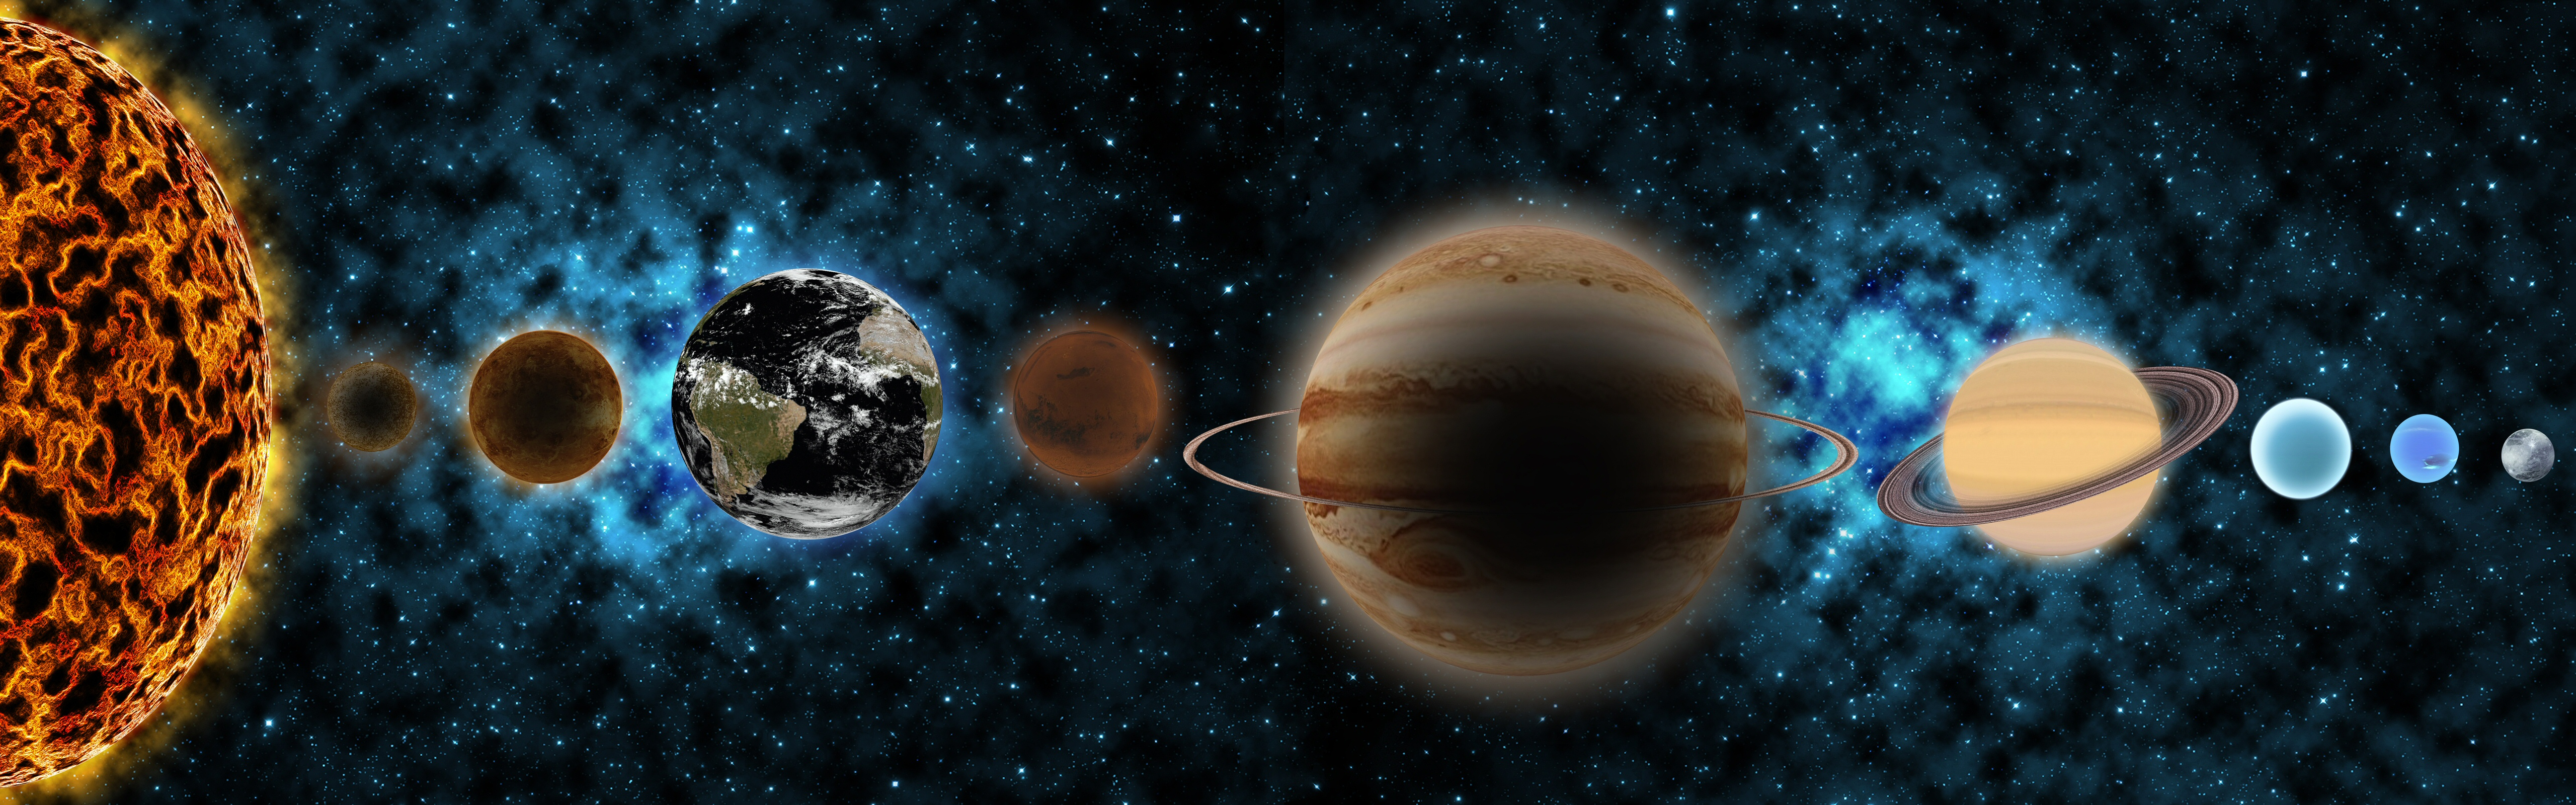 The Solar System: Pictures and Information on the Cool pictures of the solar system